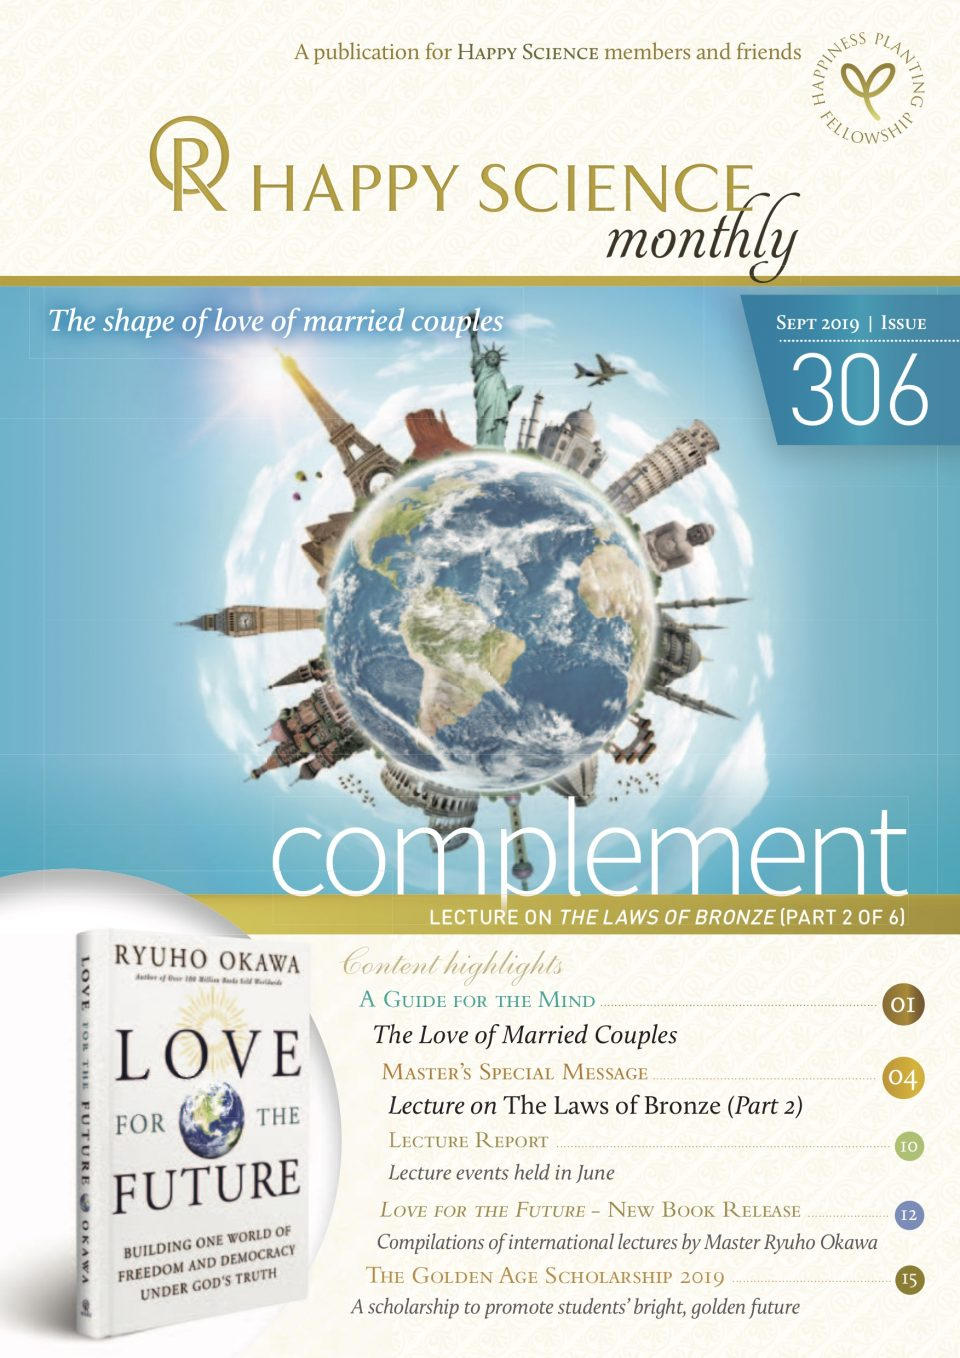 HAPPY SCIENCE Monthly 306 is released!